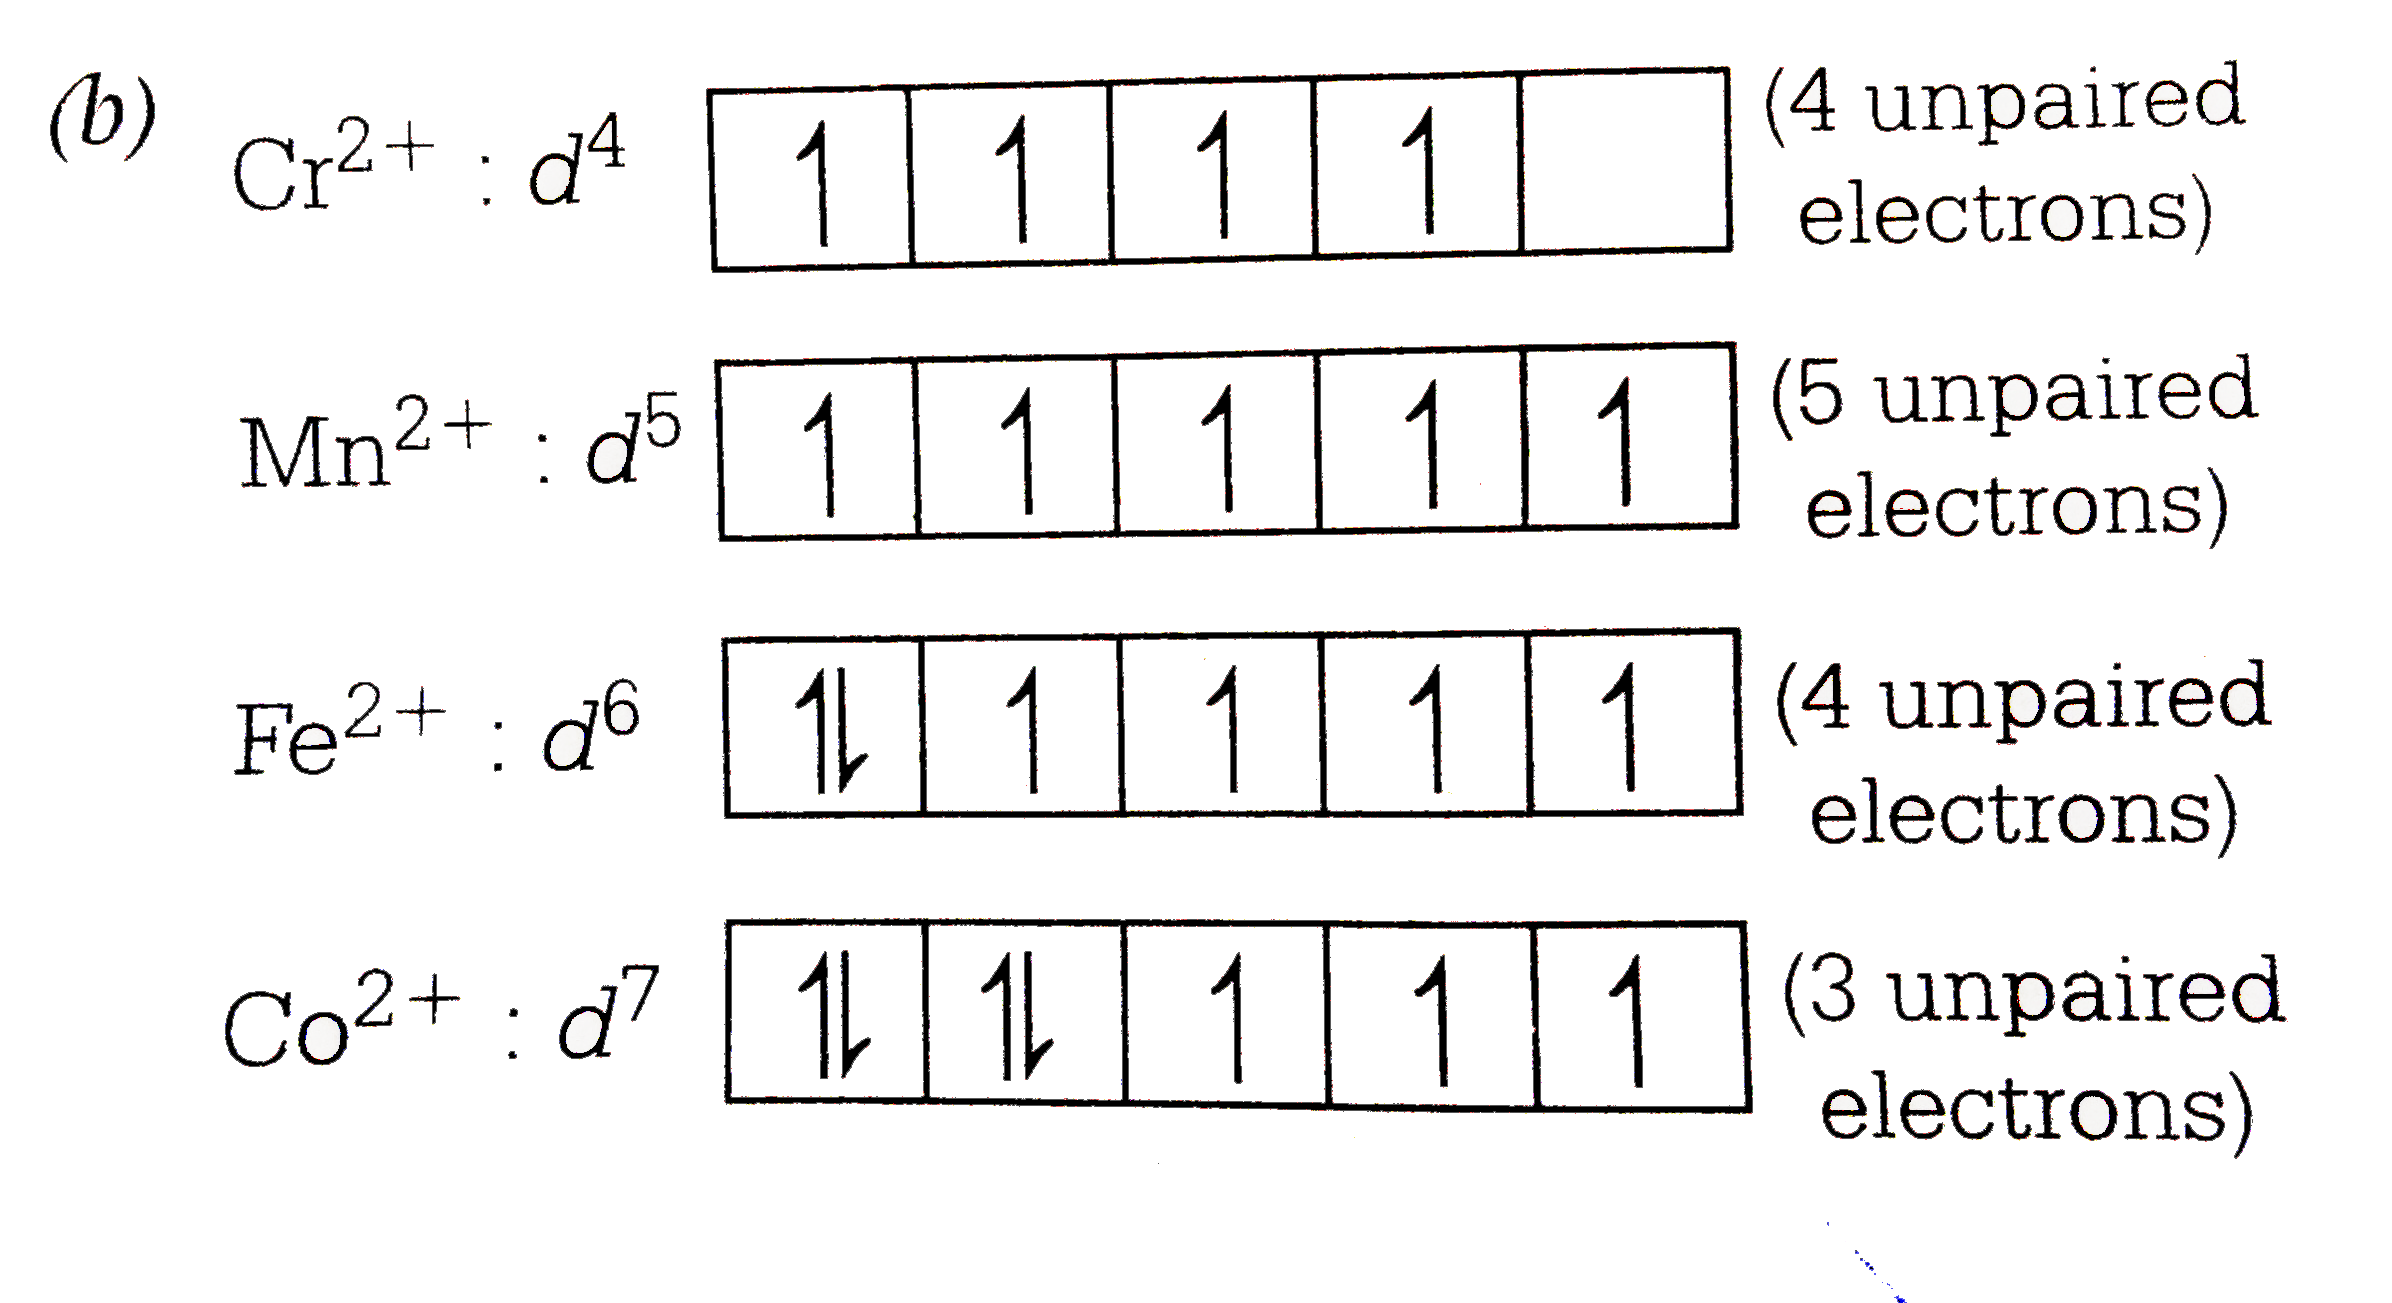 The D Electron Configurations Of Cr 2 Mn 2 Fe 2 And